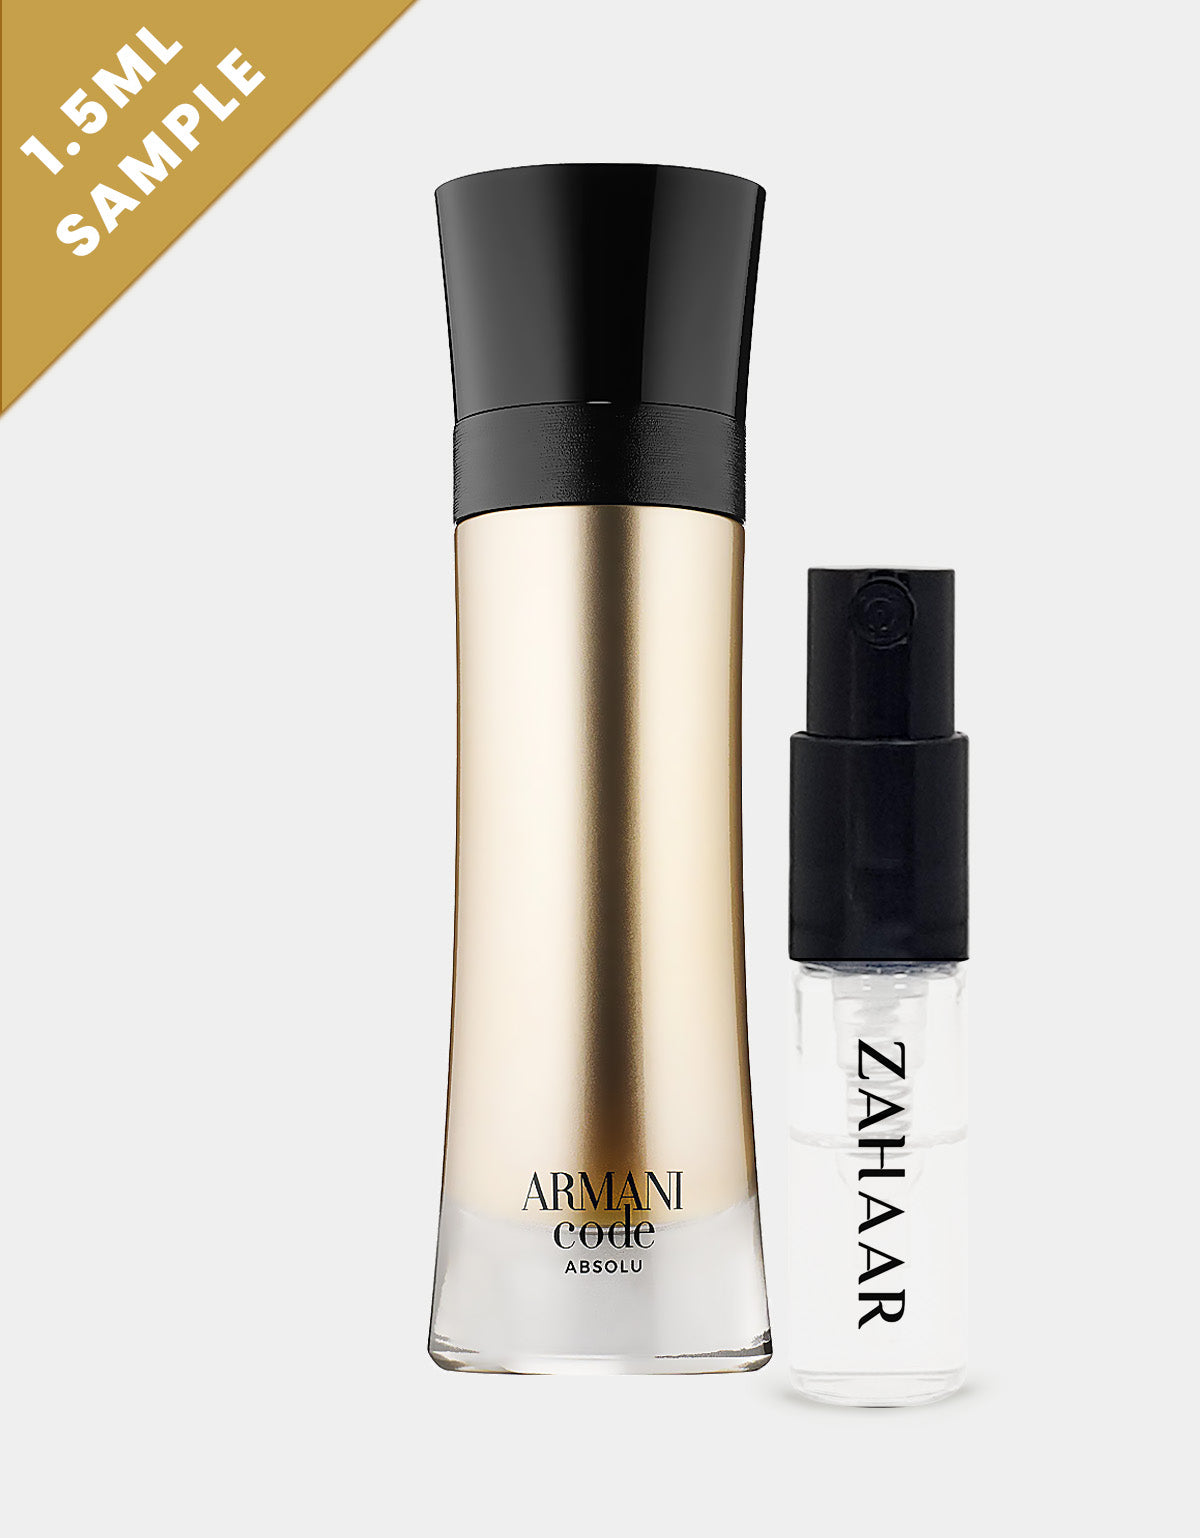 Armani Code Absolu Pour Homme - 1.5 ml Sample